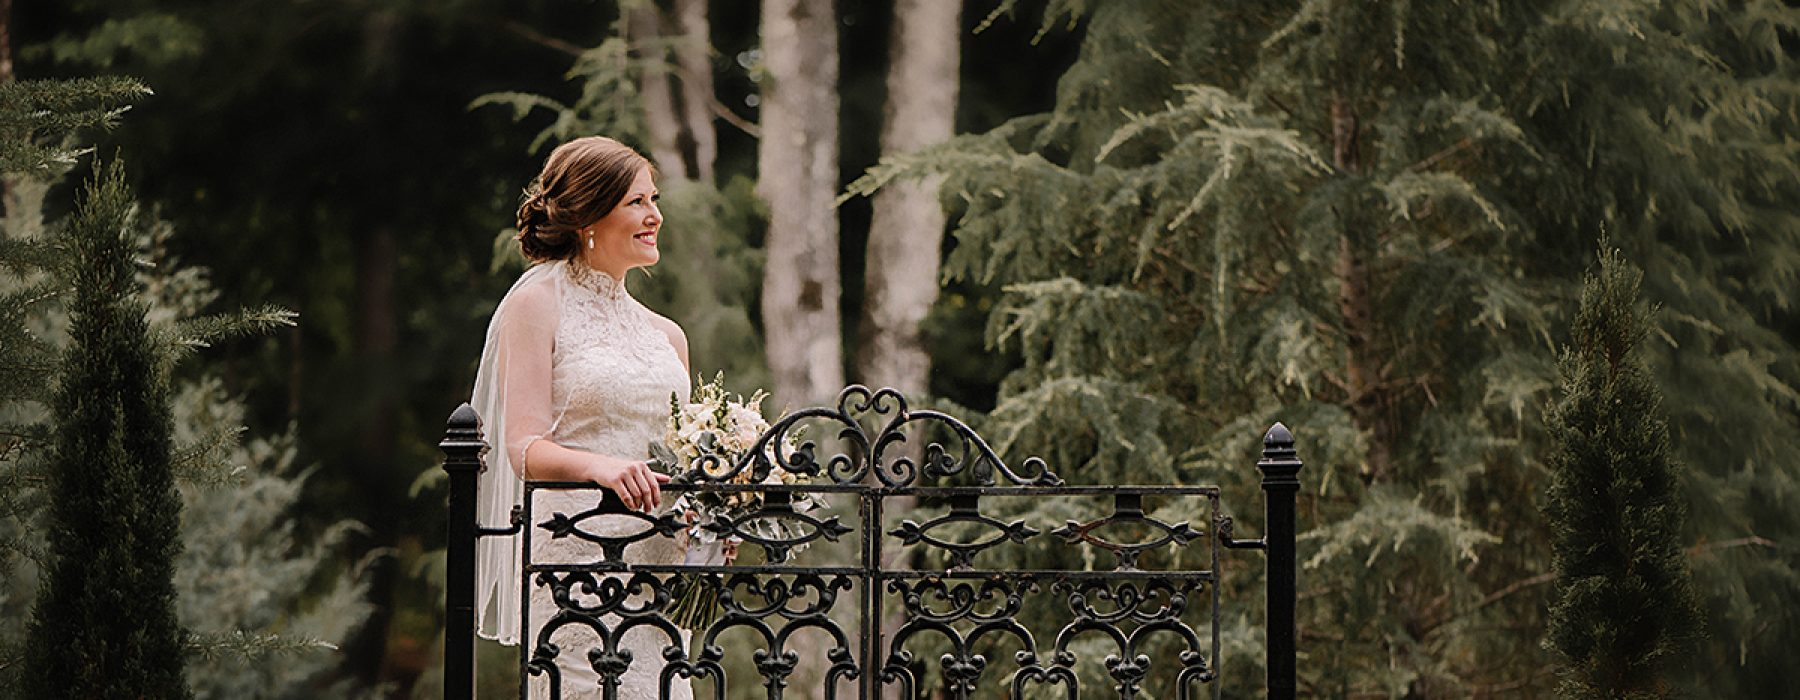 A bride stands next to an iron gate